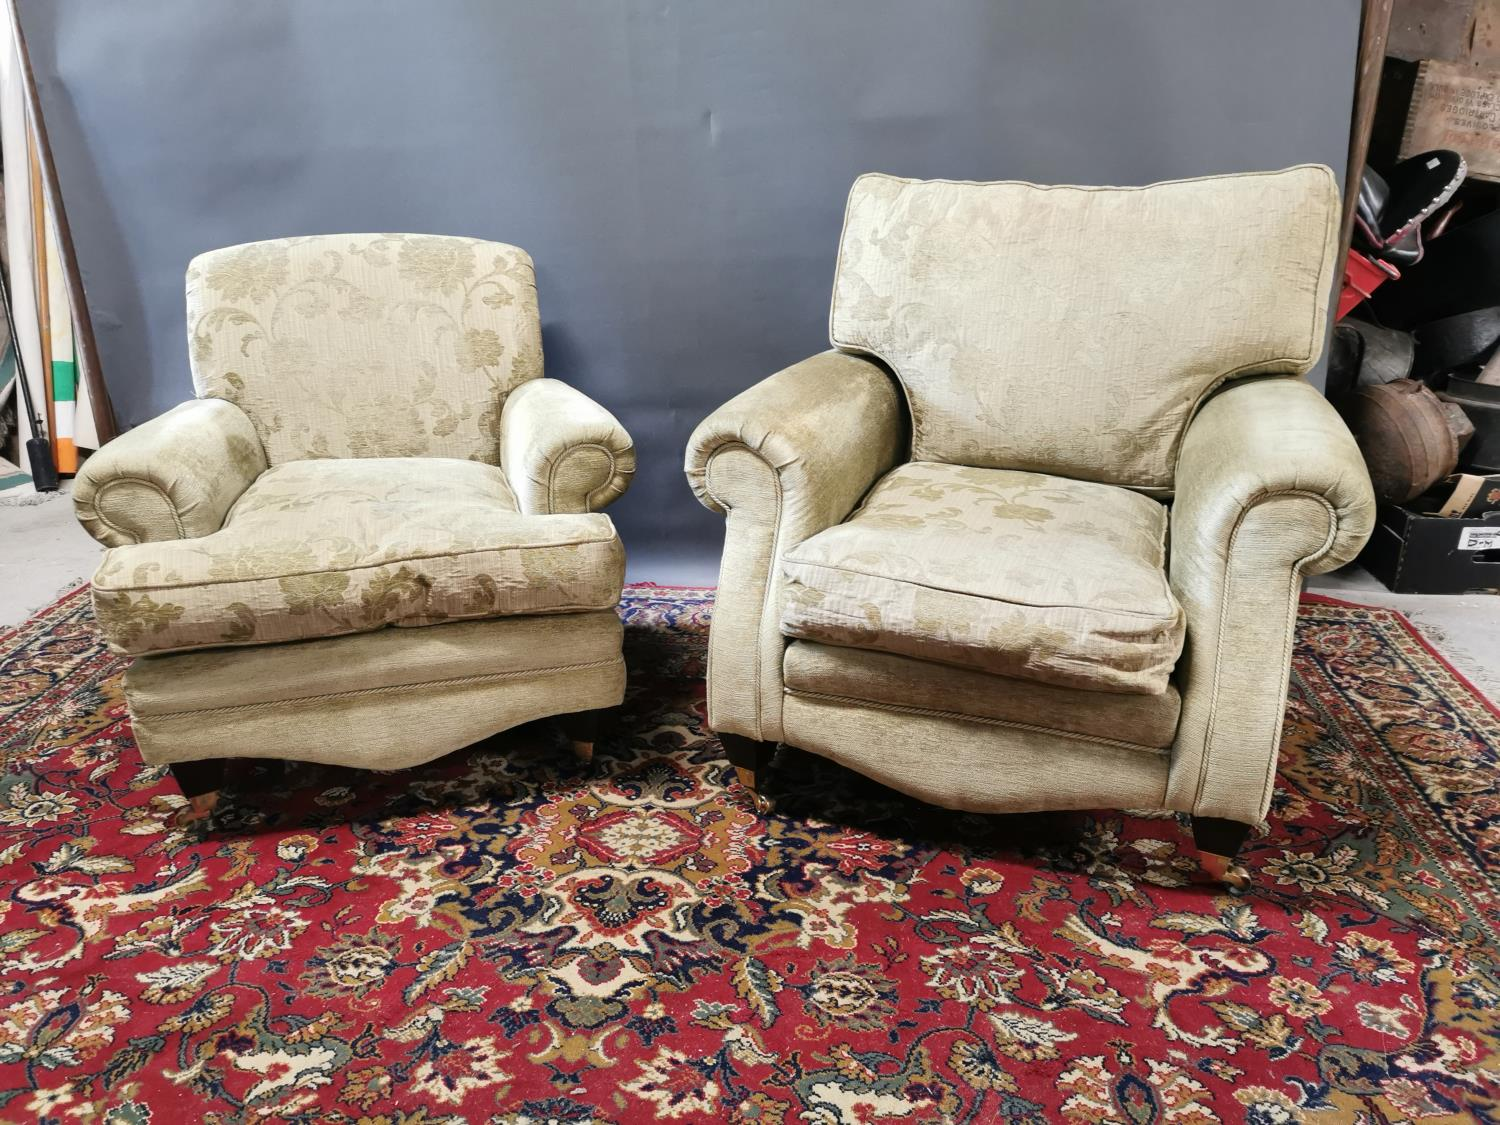 Near pair of upholstered armchairs